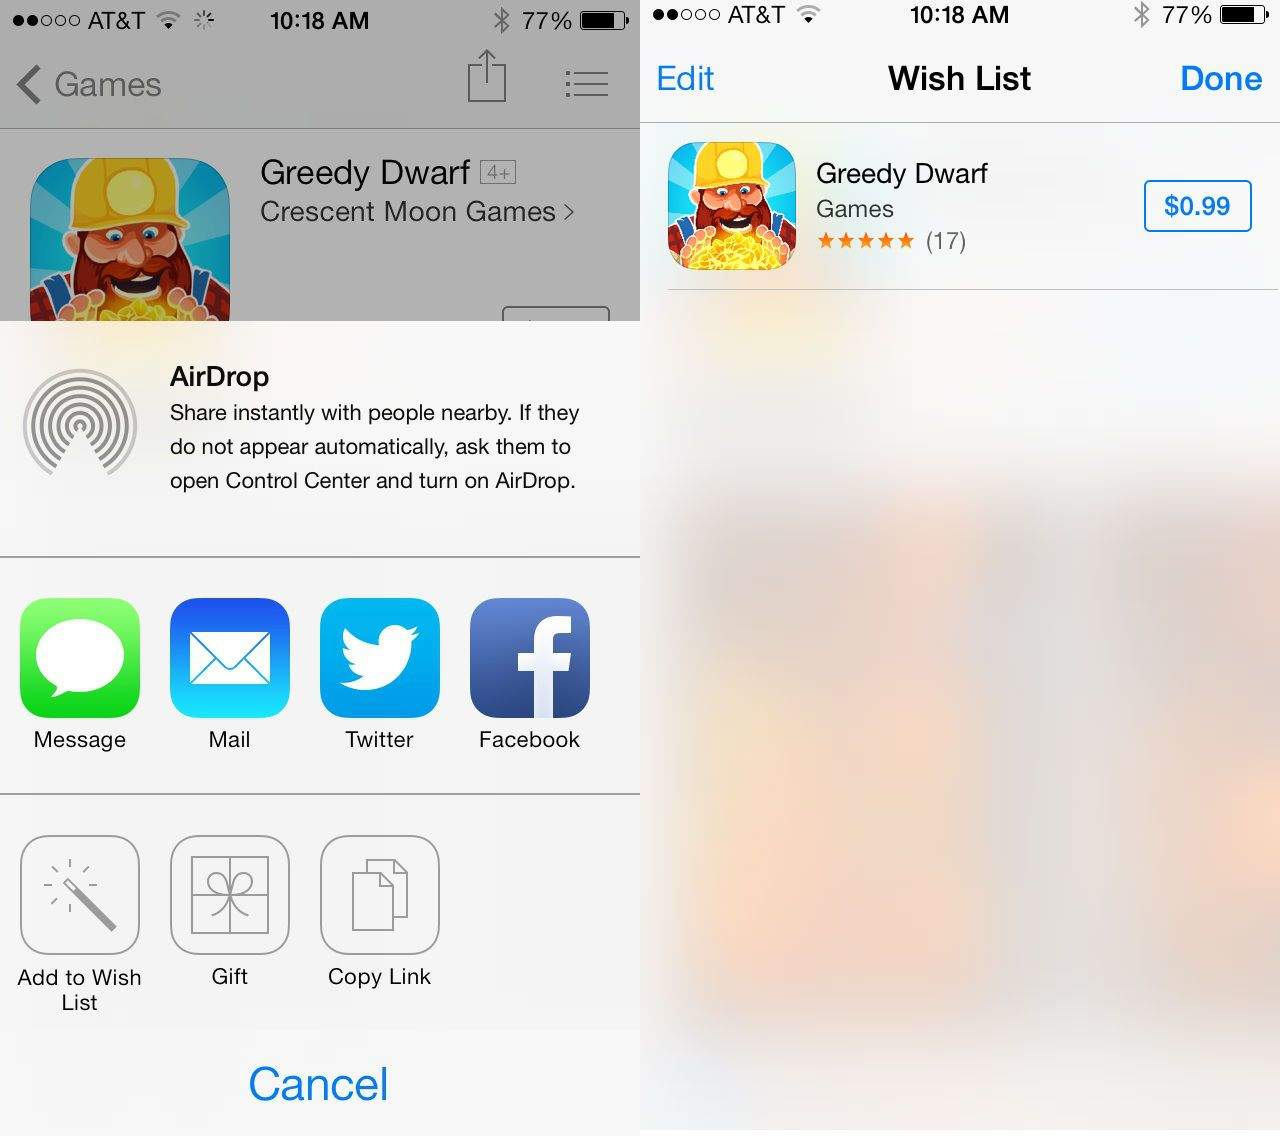 Use Ios 7 Beta's New App Store Wishlist Feature To Manage Your App Wants [ Ios Tips]  Cult Of Mac